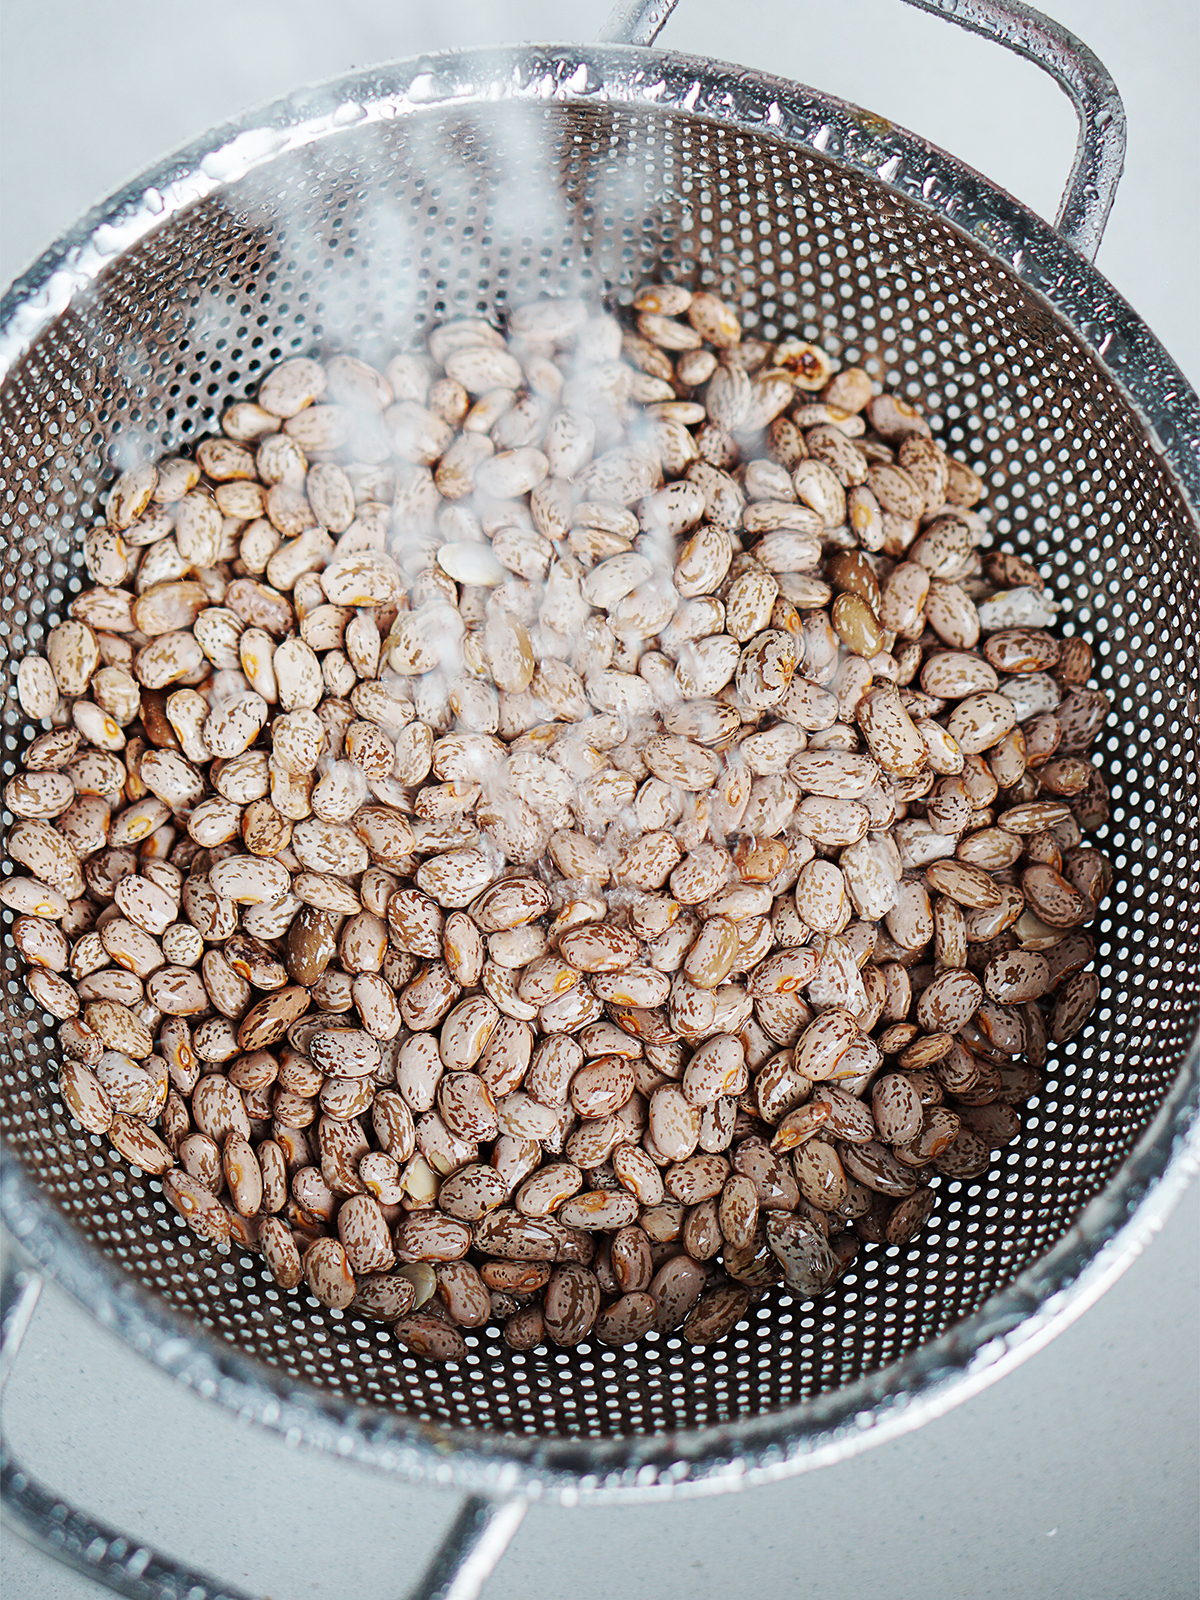 Rinsing pinto beans in a colander